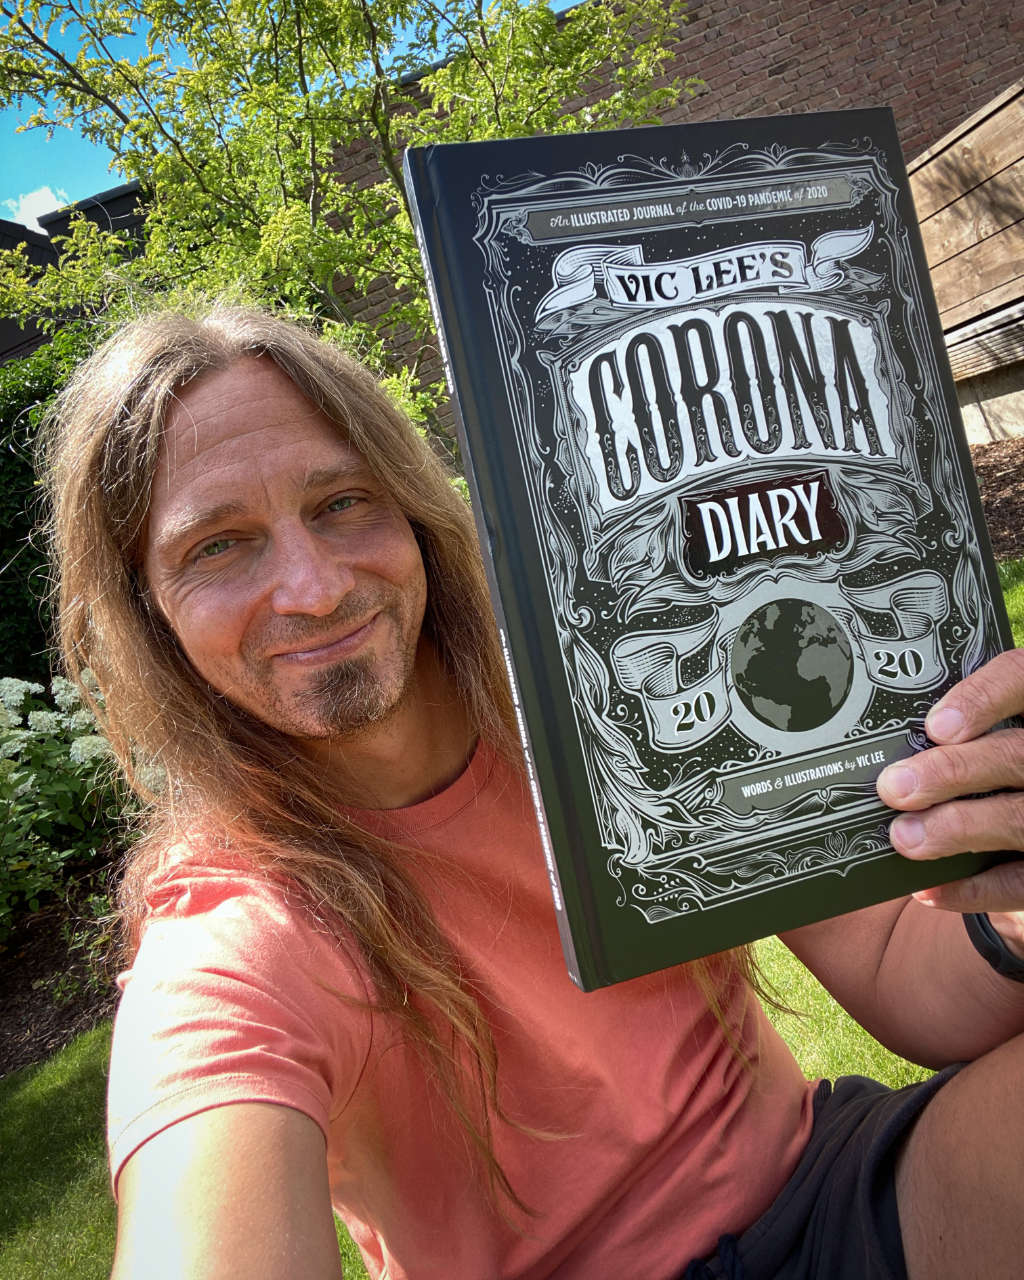 The photo showing me holding up the Corona Diary 2020 by Vic Lee, a book full of illustrations by him.